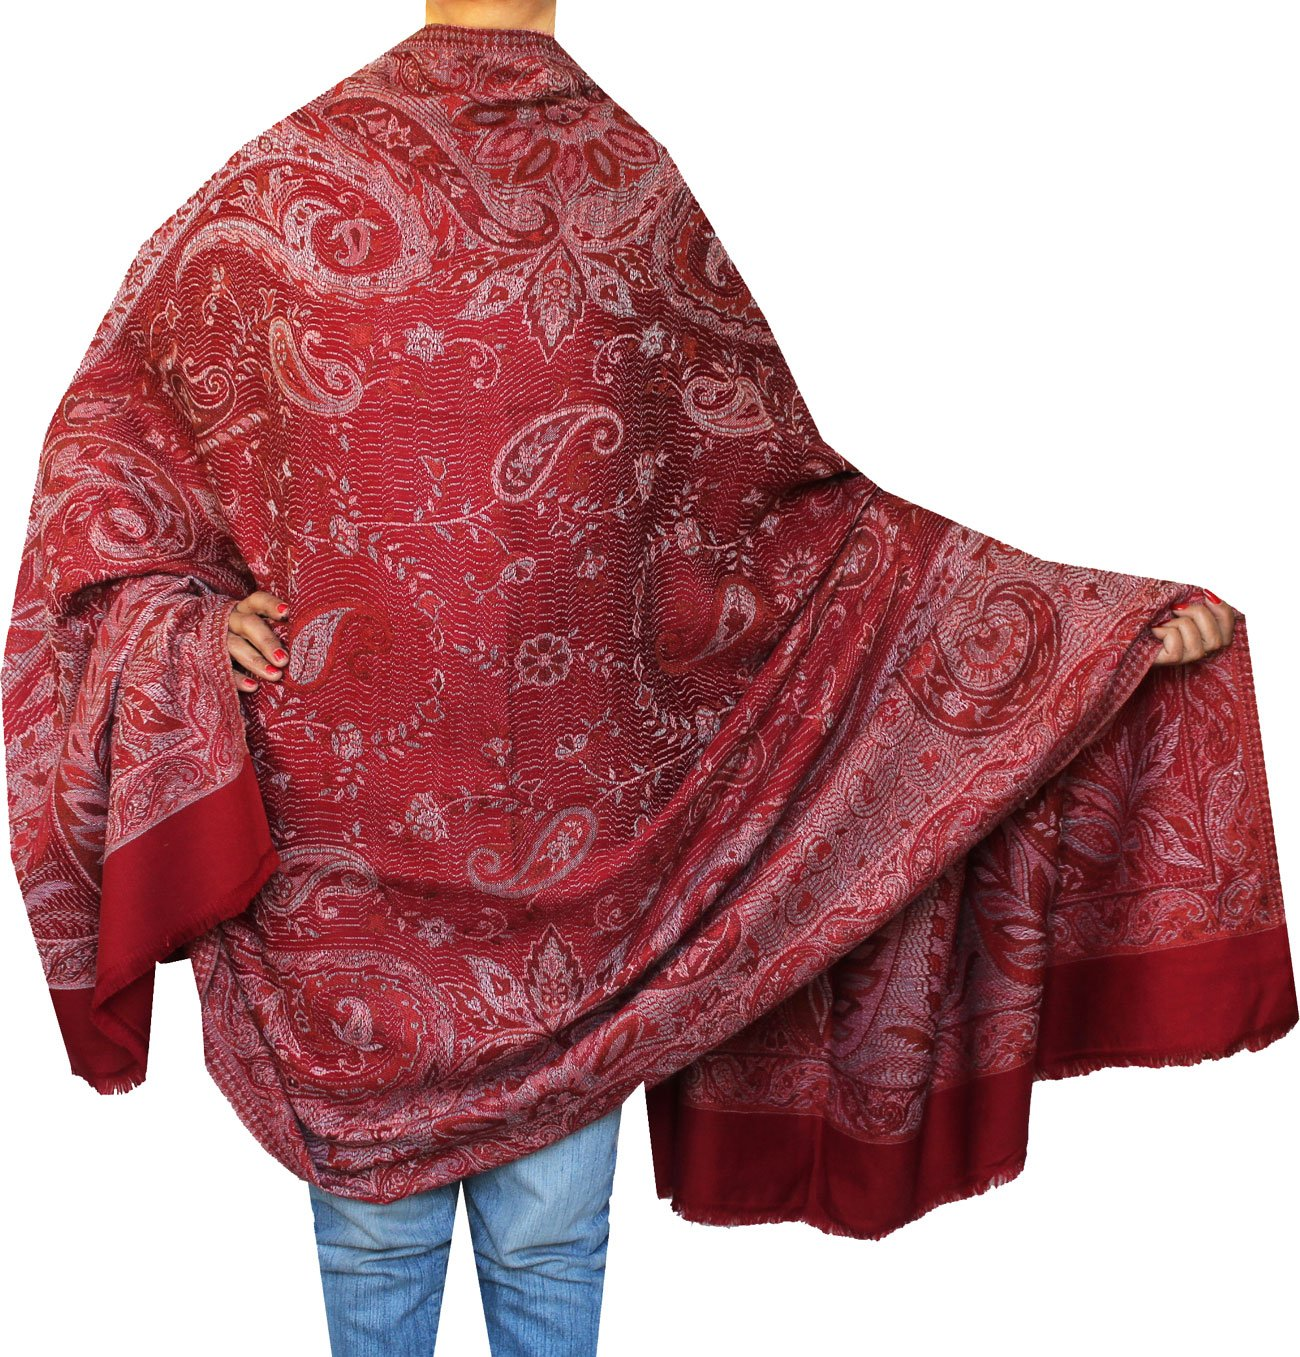 Paisley Scarves Wraps Womens Wool Shawl India Clothes (82 x 42 inches) Maple Clothing shwlj2221610a